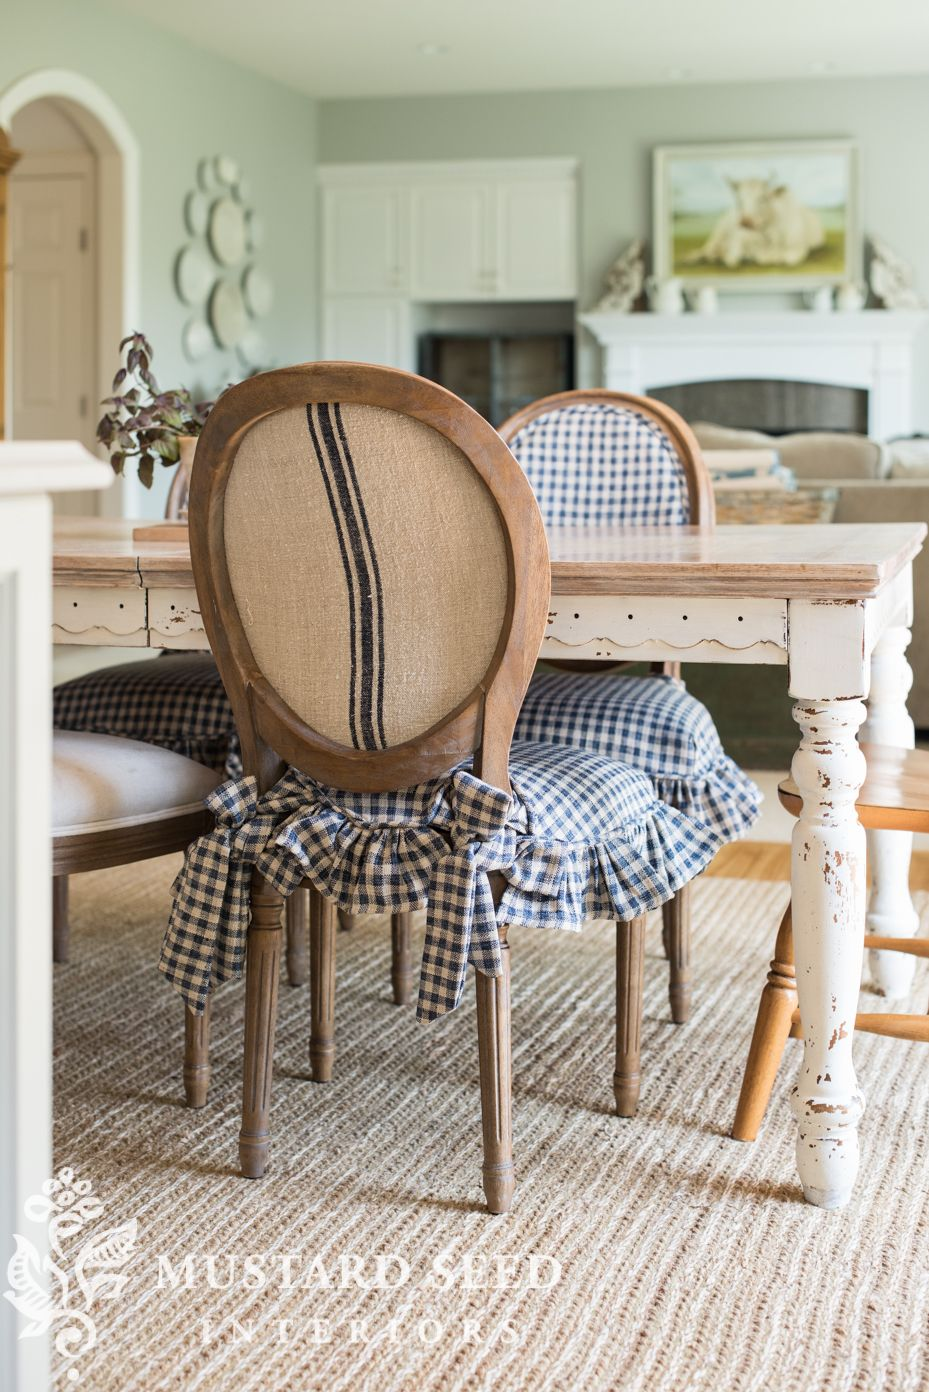 Cottage Style Kitchen Chairs Pair Of Chair Makeovers The Best Farmhouse Home Decor Inspiration Miss Mustard Seed Missmustardseed Farmhousestyle Upholstery Frenchchairs